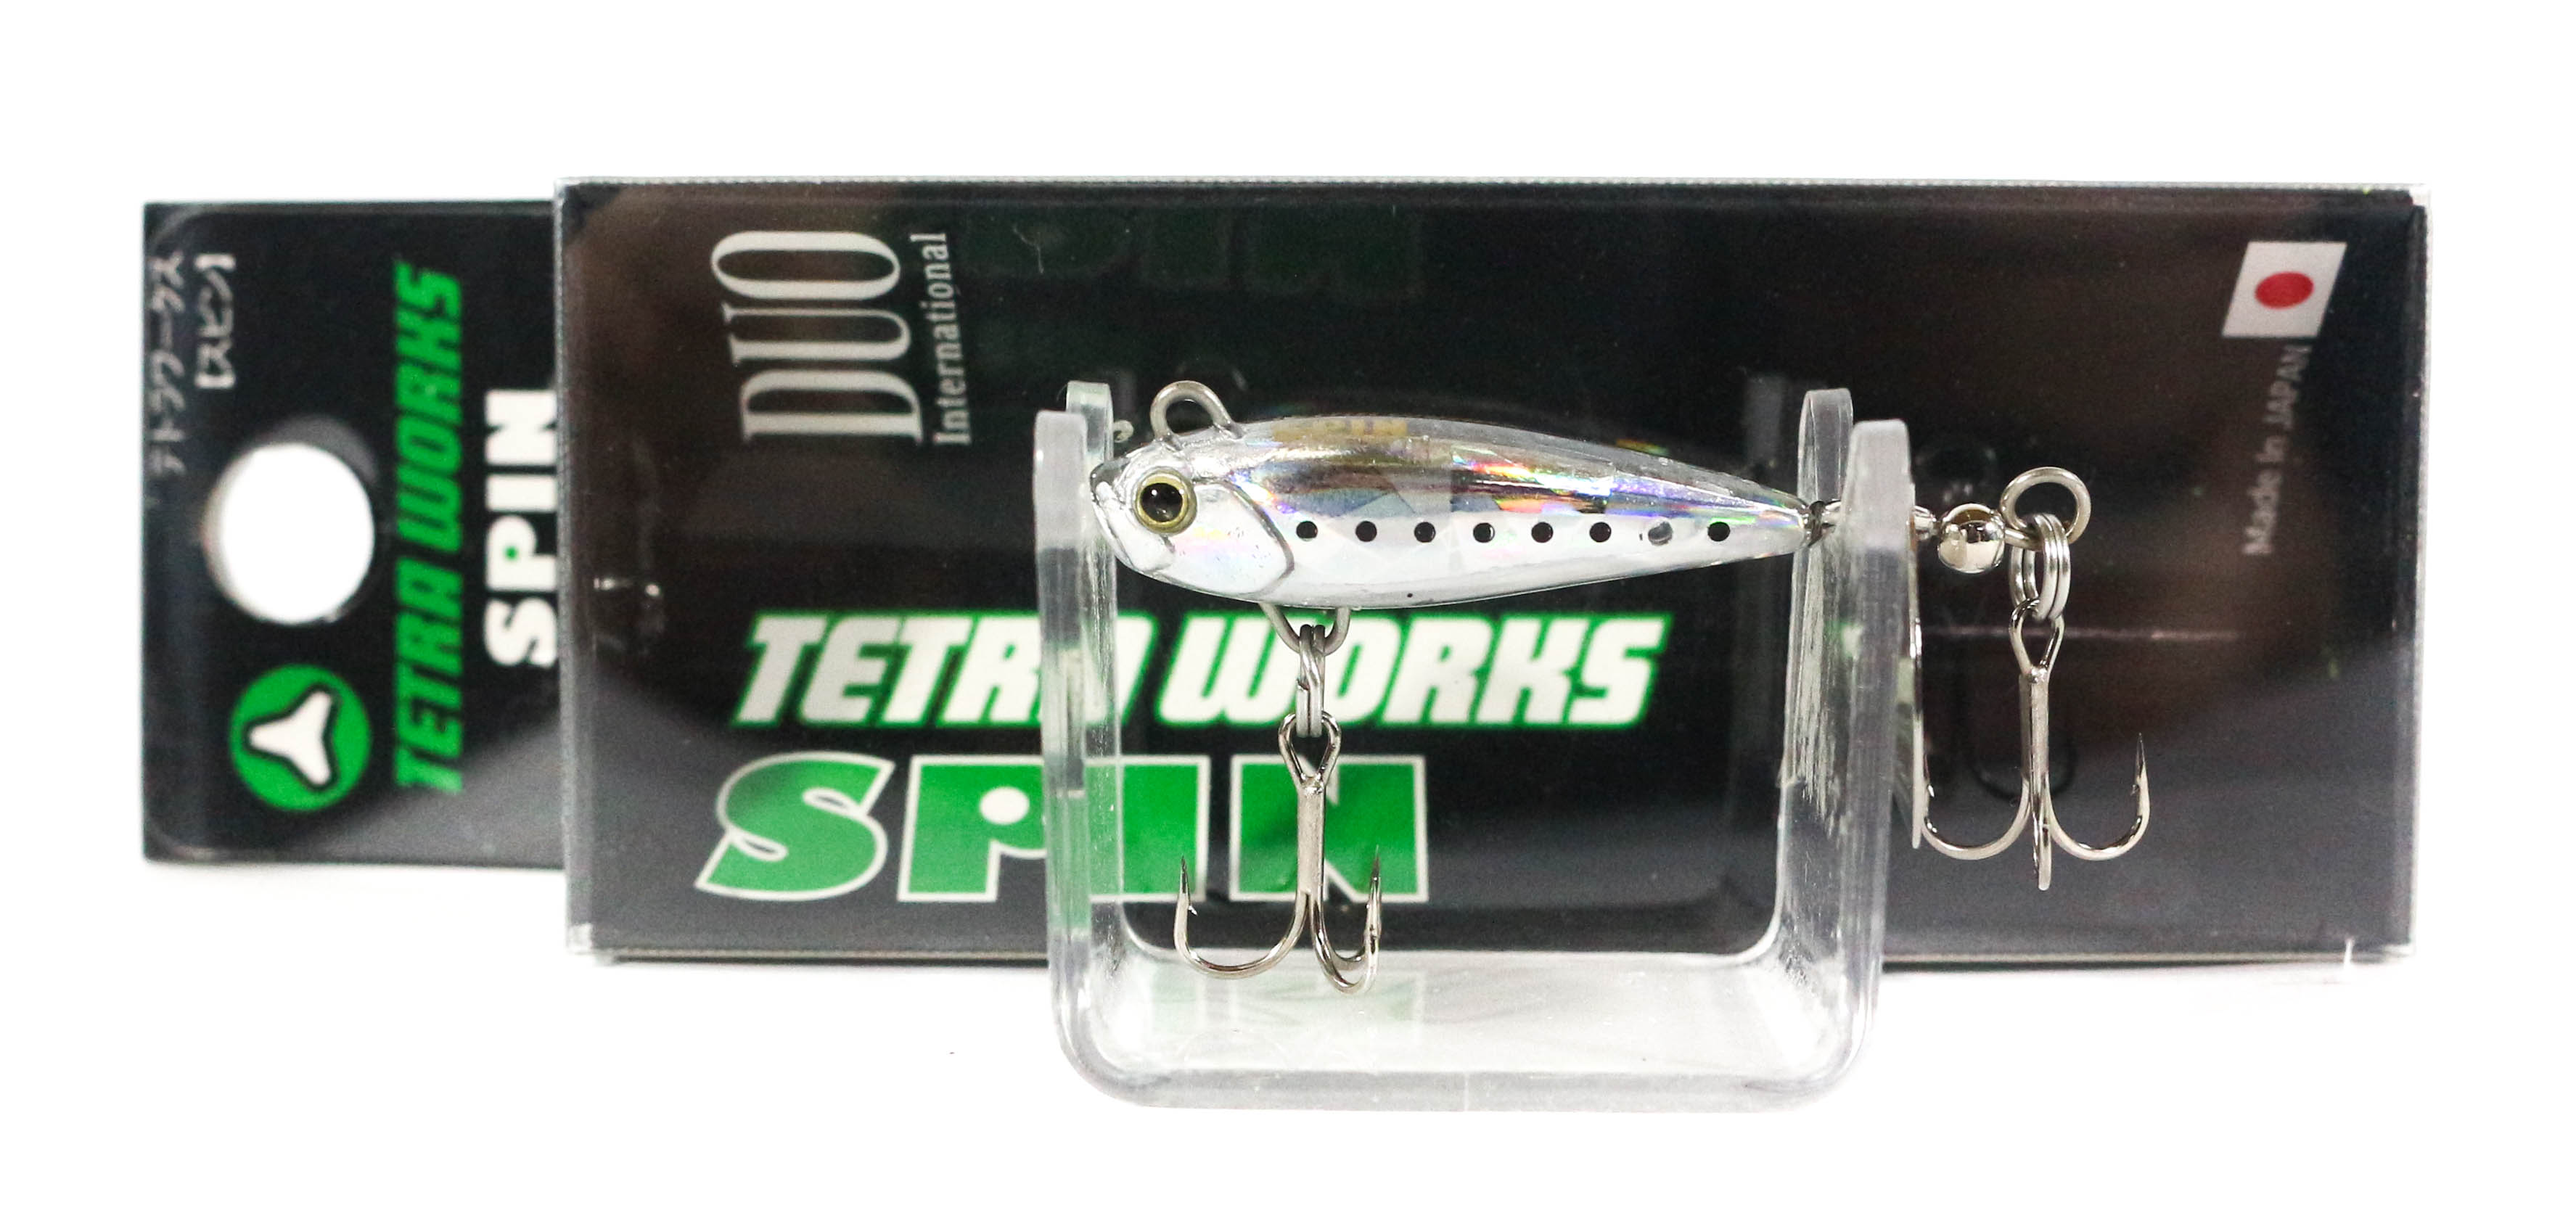 Duo Tetra Works Spin 28 mm 5 grams Sinking Lure CKA0370 (5413)